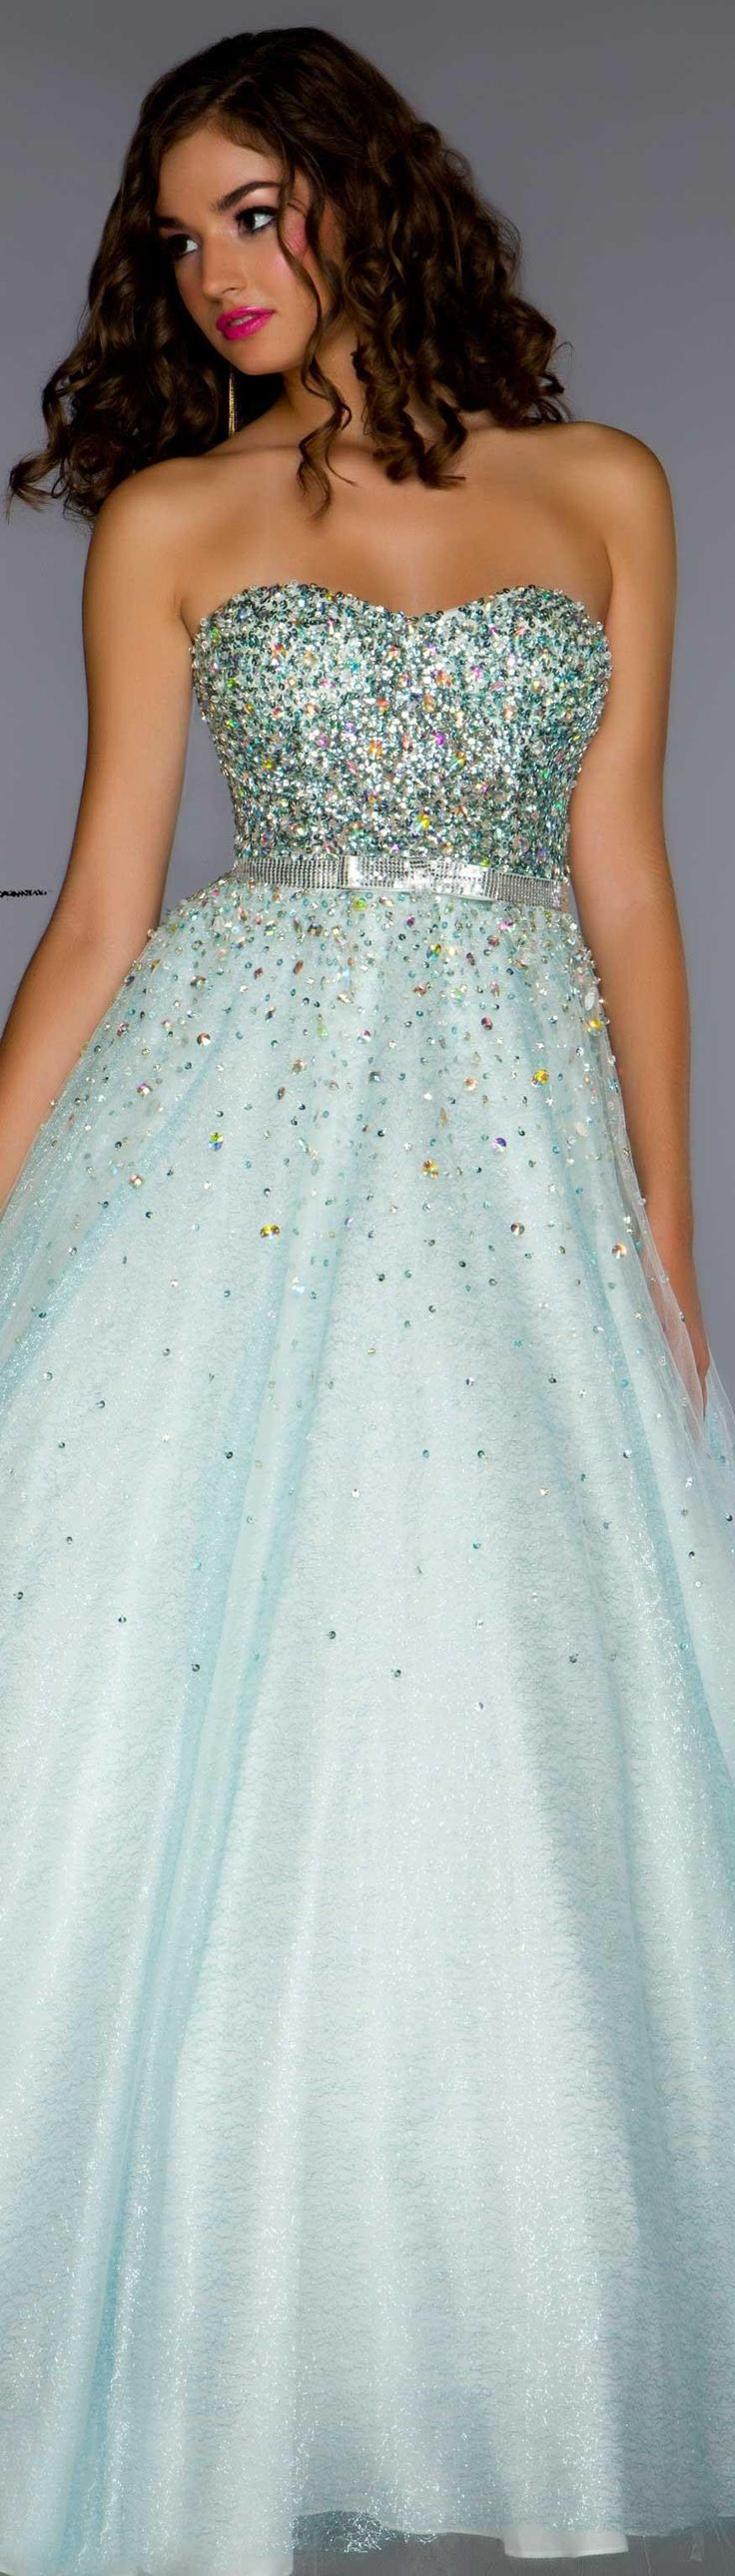 Mac Duggal couture prom dress STYLE 61184H 2013